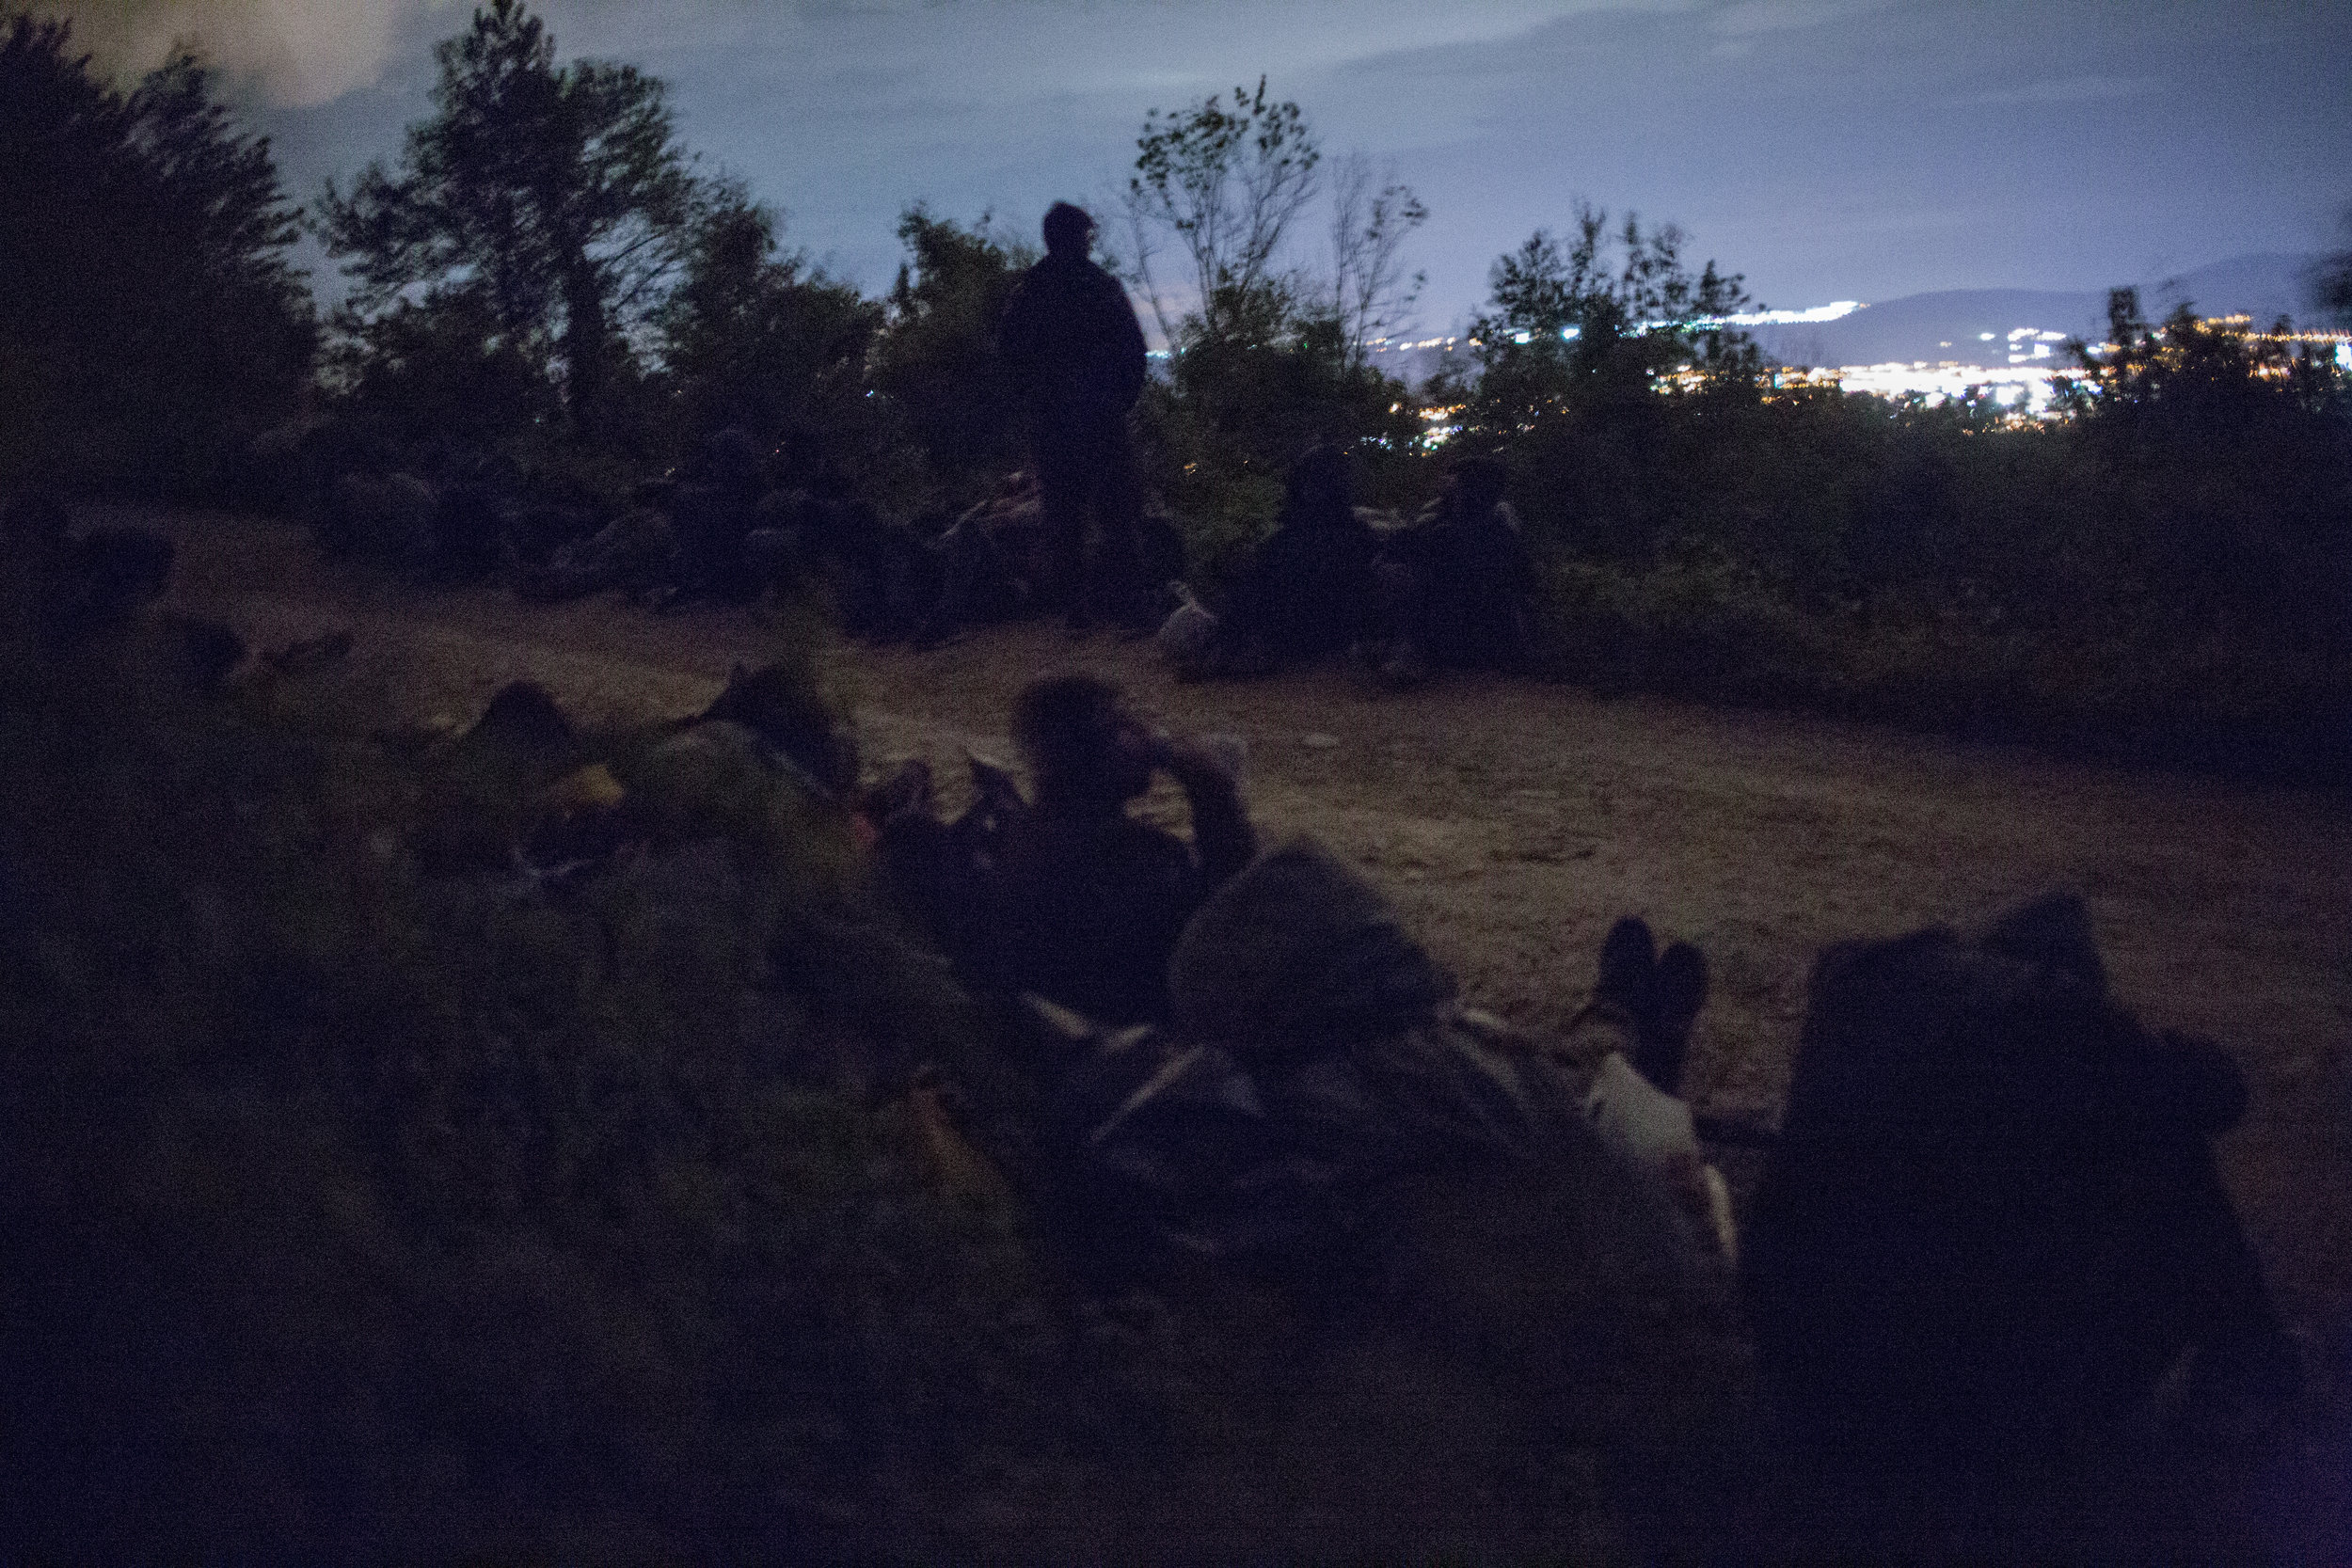 A group of refugees on a night walk near Zavalje in BiH towards Croatian border. For the most part, to avoid encountering police officers and residents, they choose less popular roads and places. The night shelters them from unwanted views.